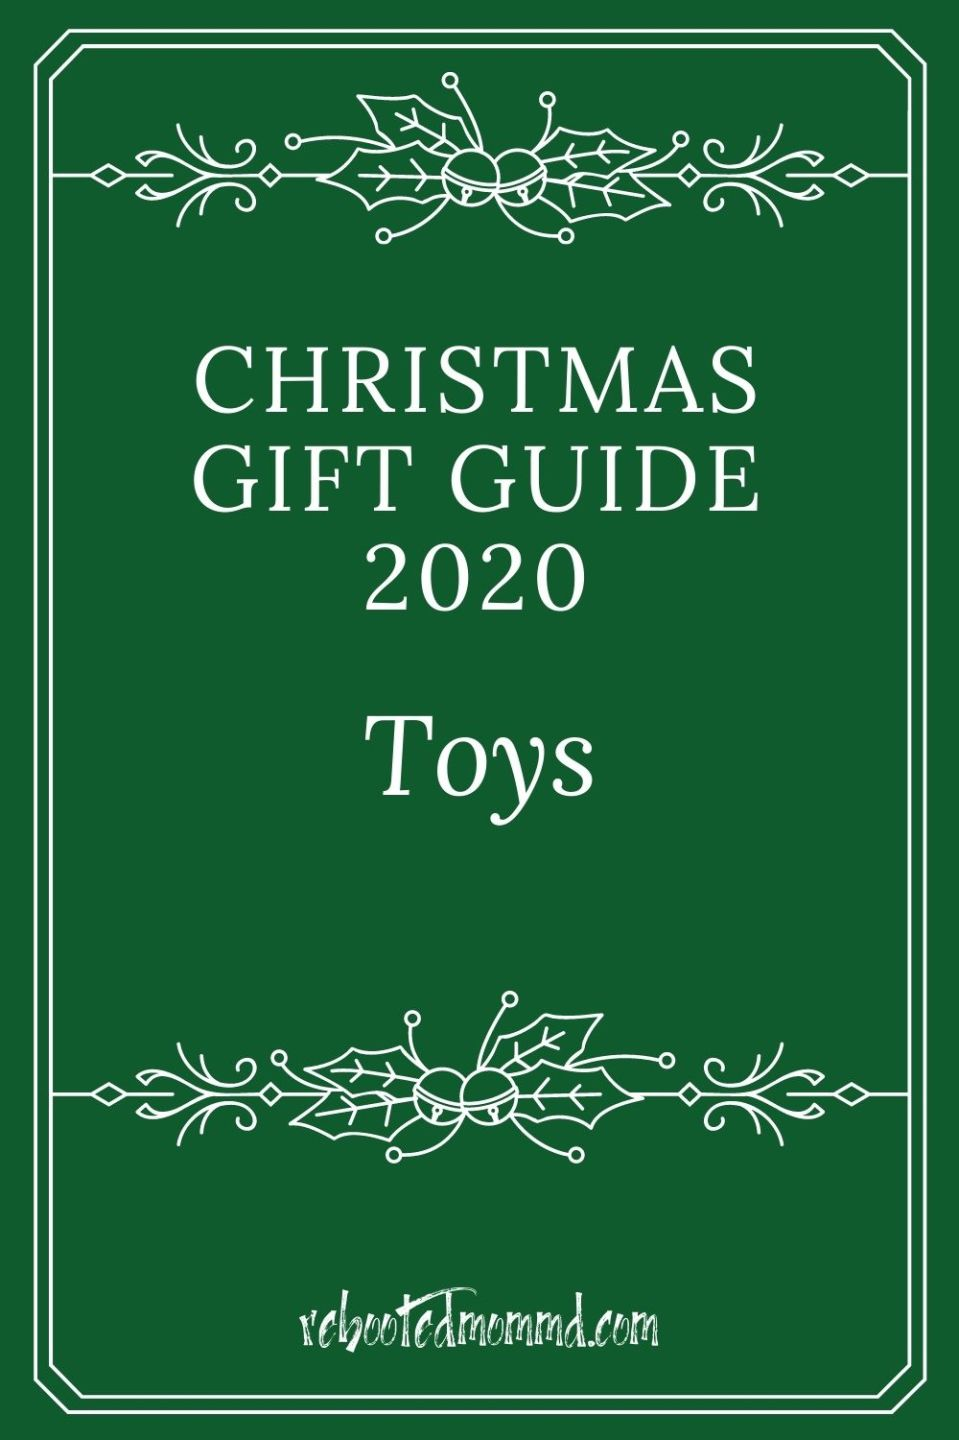 Christmas Gift Guide 2020: Toys